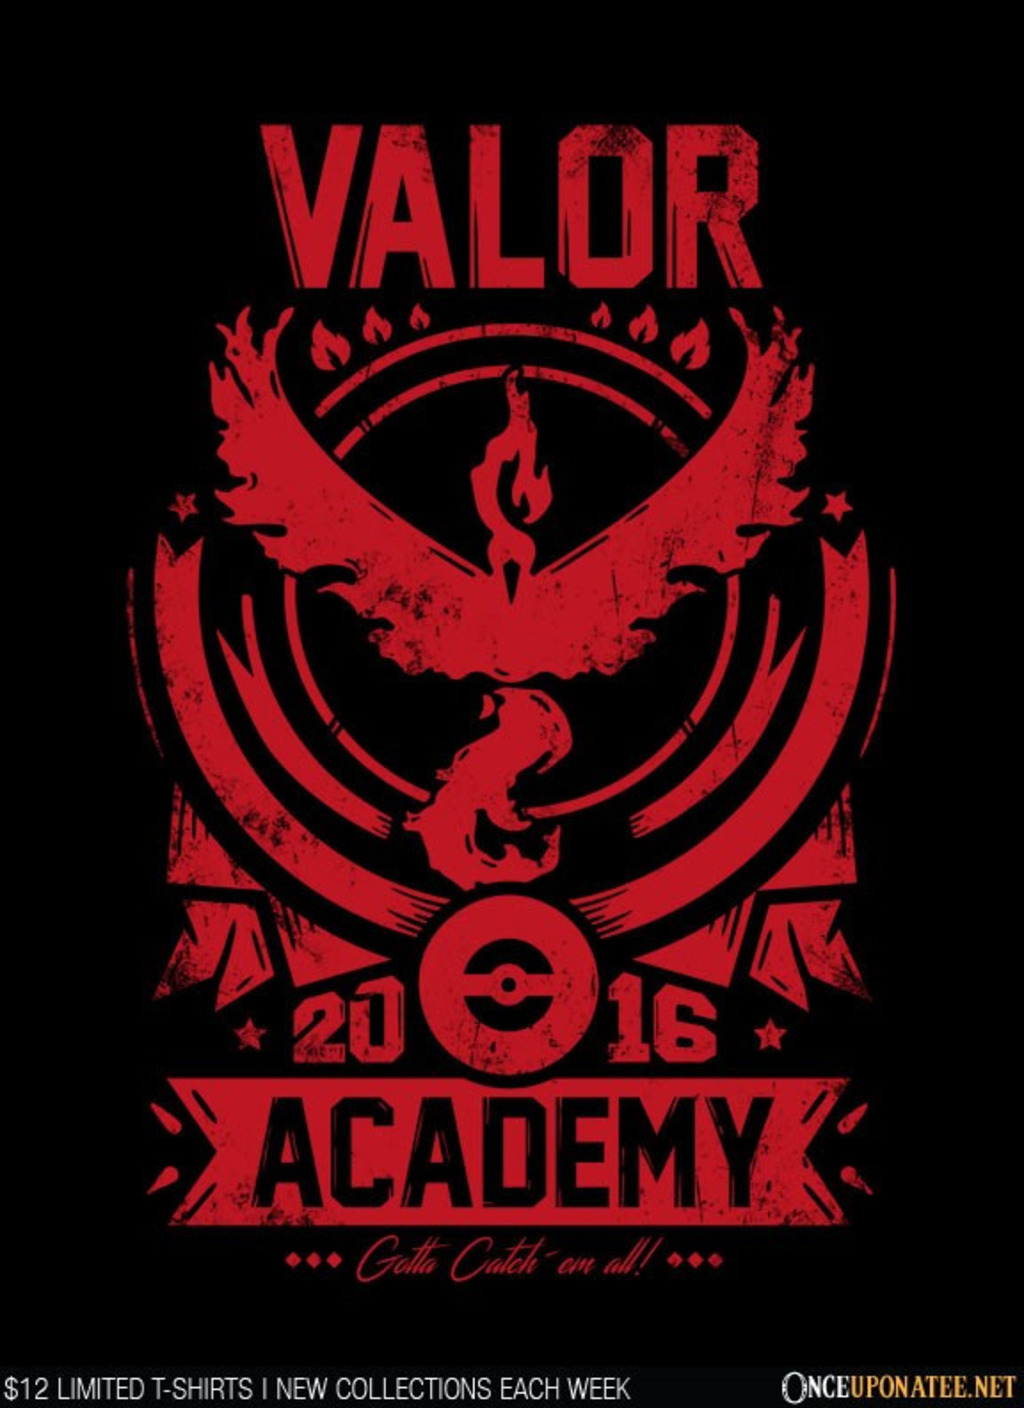 Once Upon a Tee: Valor Academy